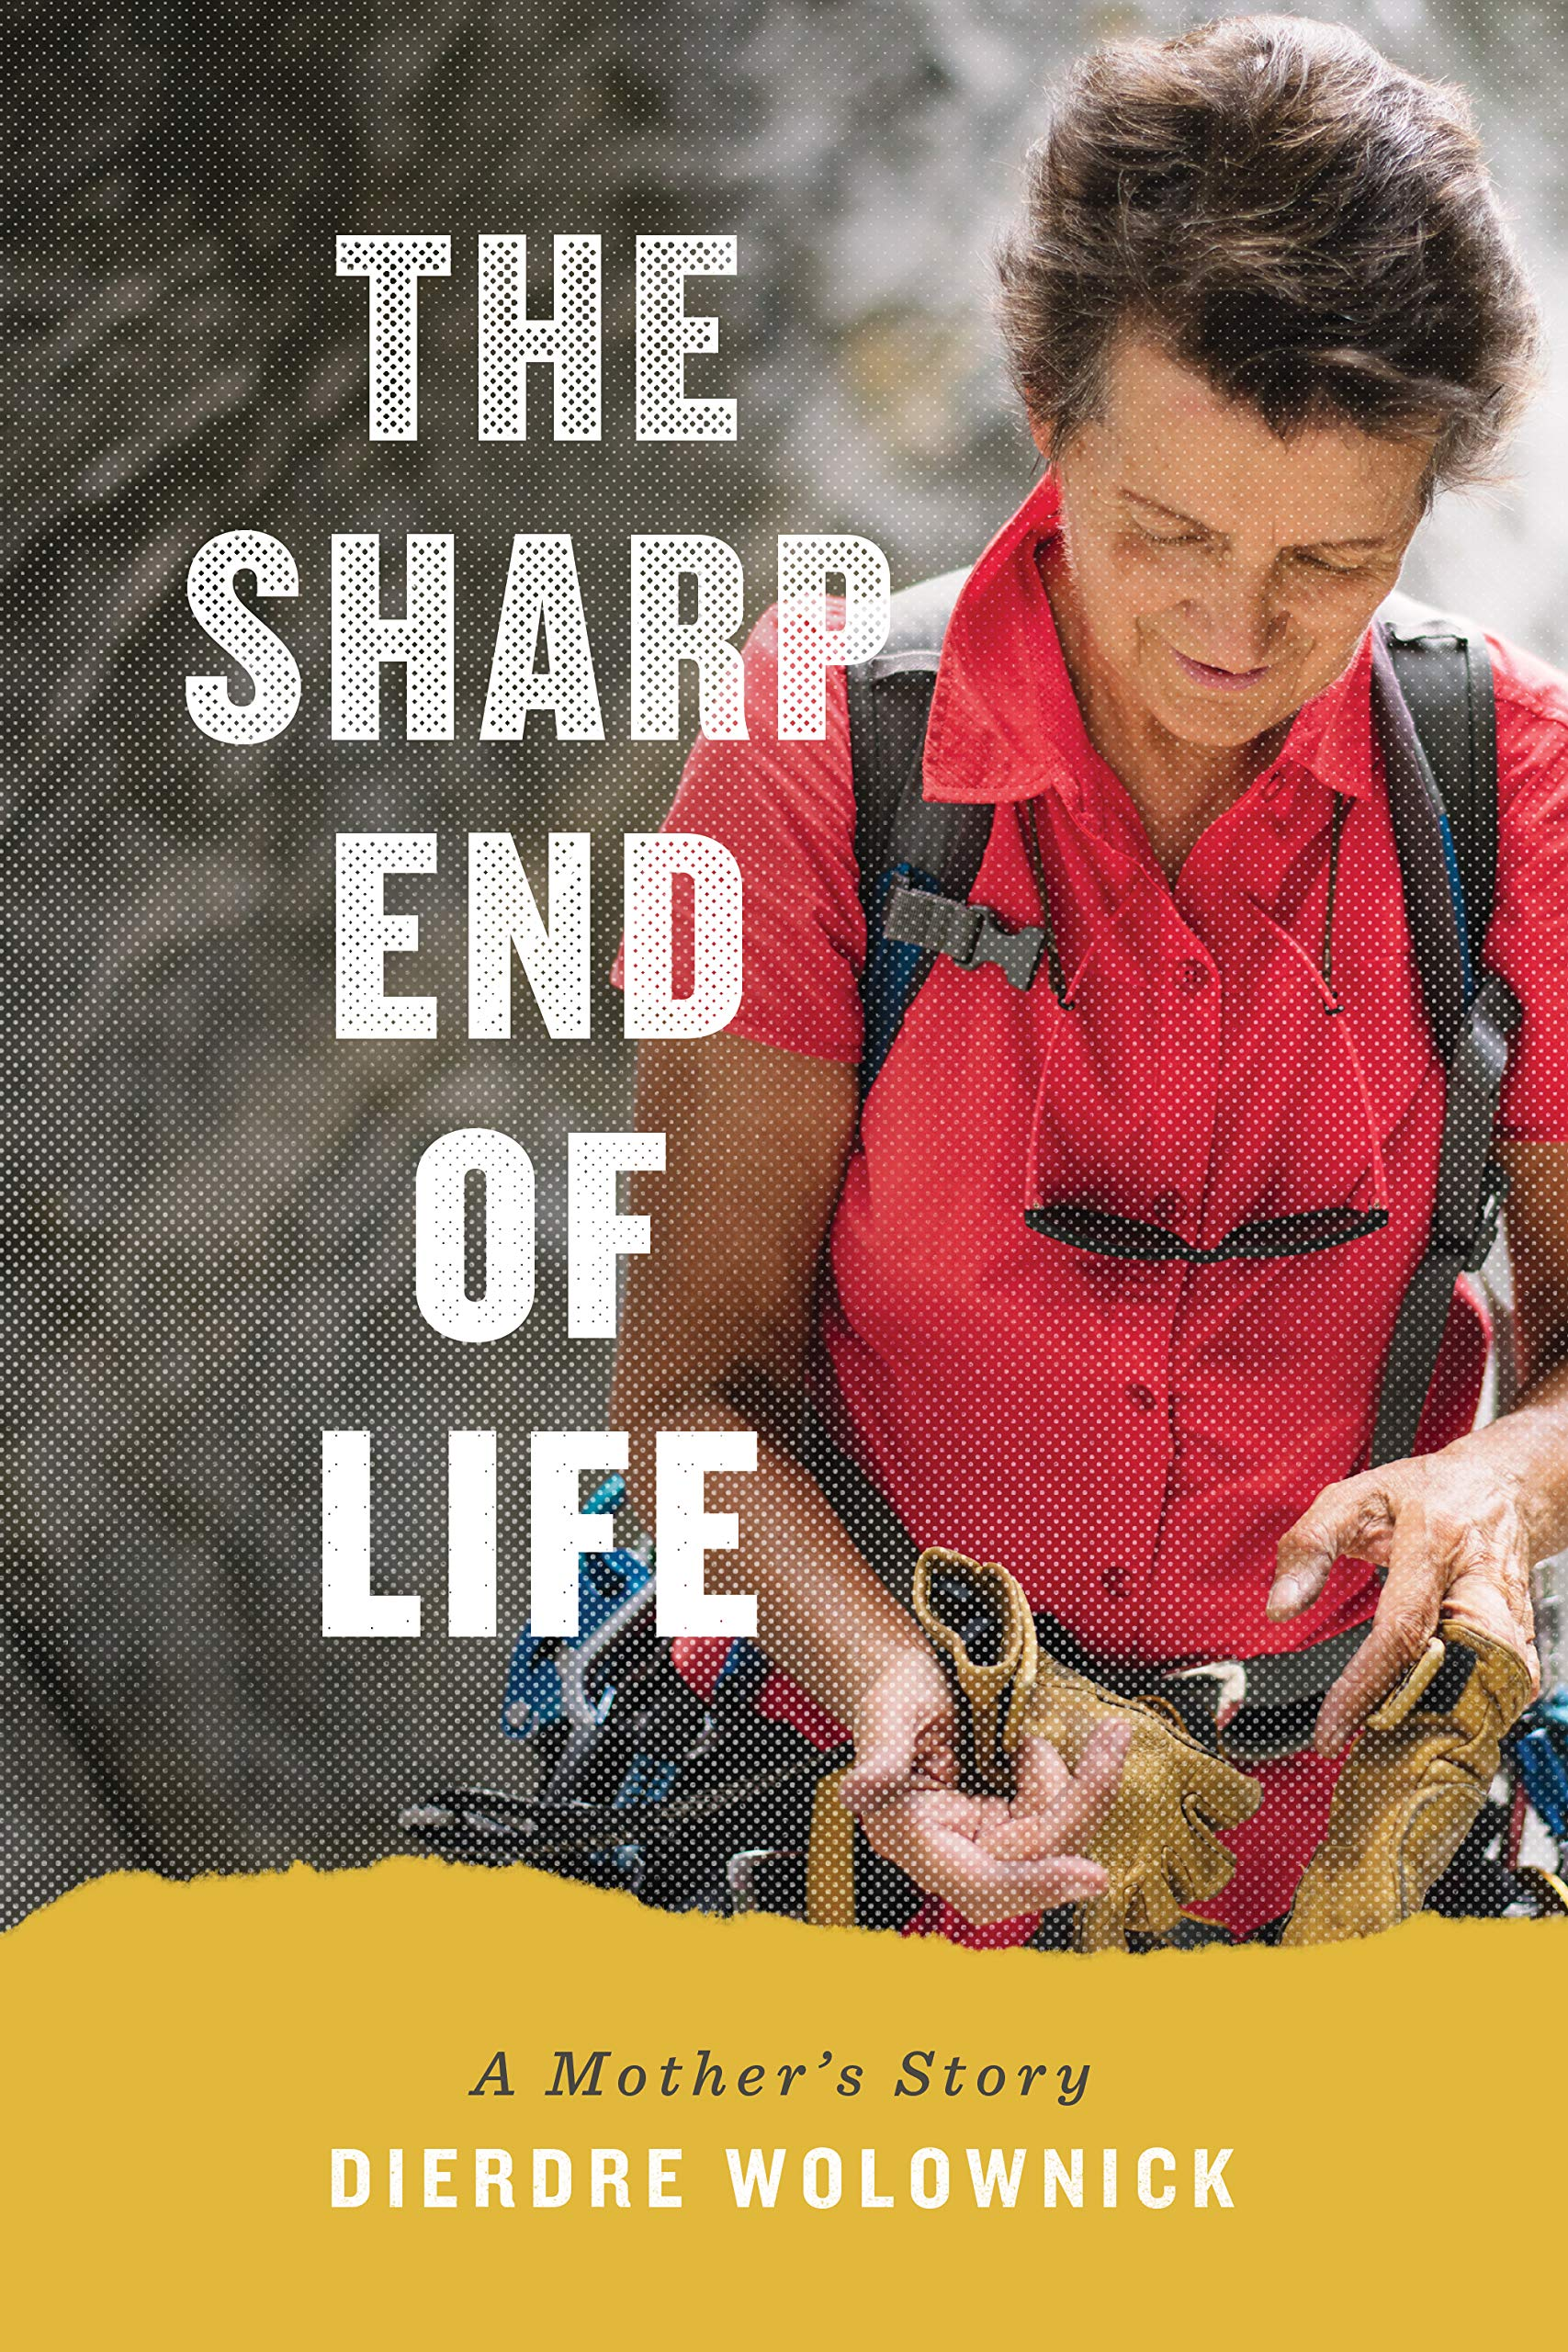 Image result for the sharp end of life a mother's story